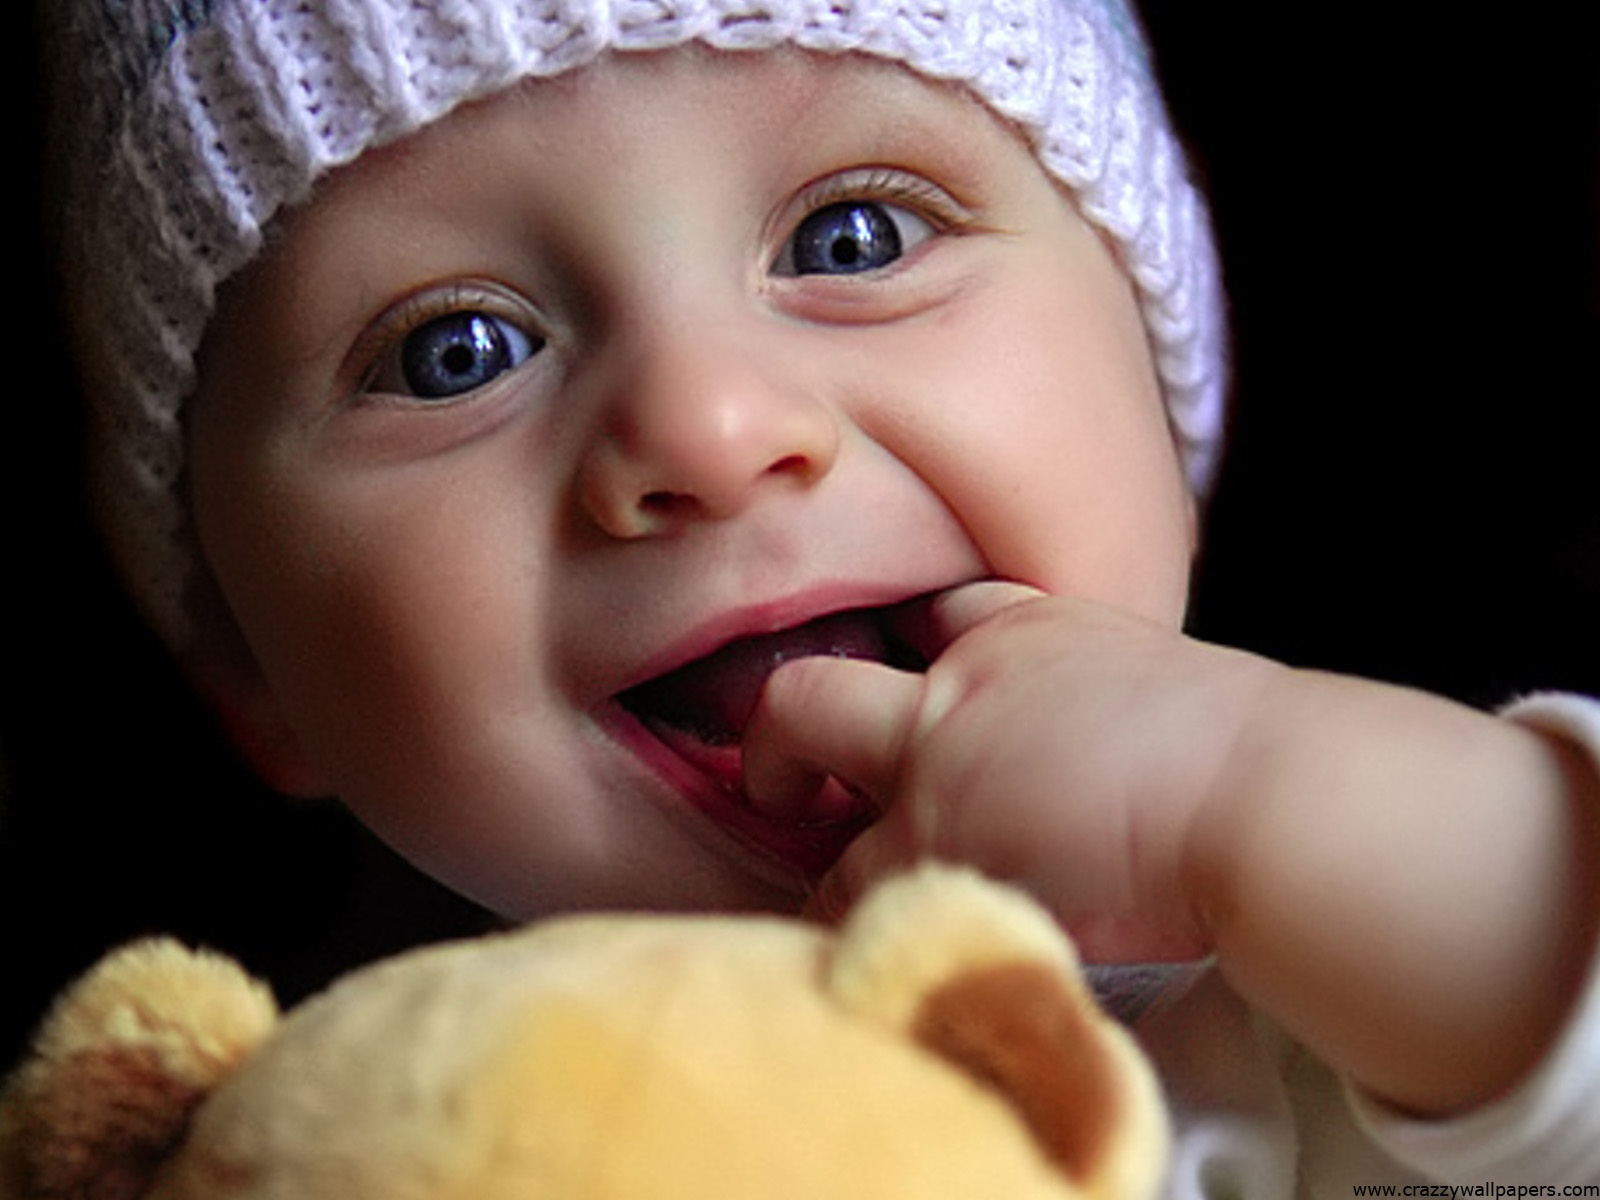 download wallpaper for cute babies | techpandey - a technology blog